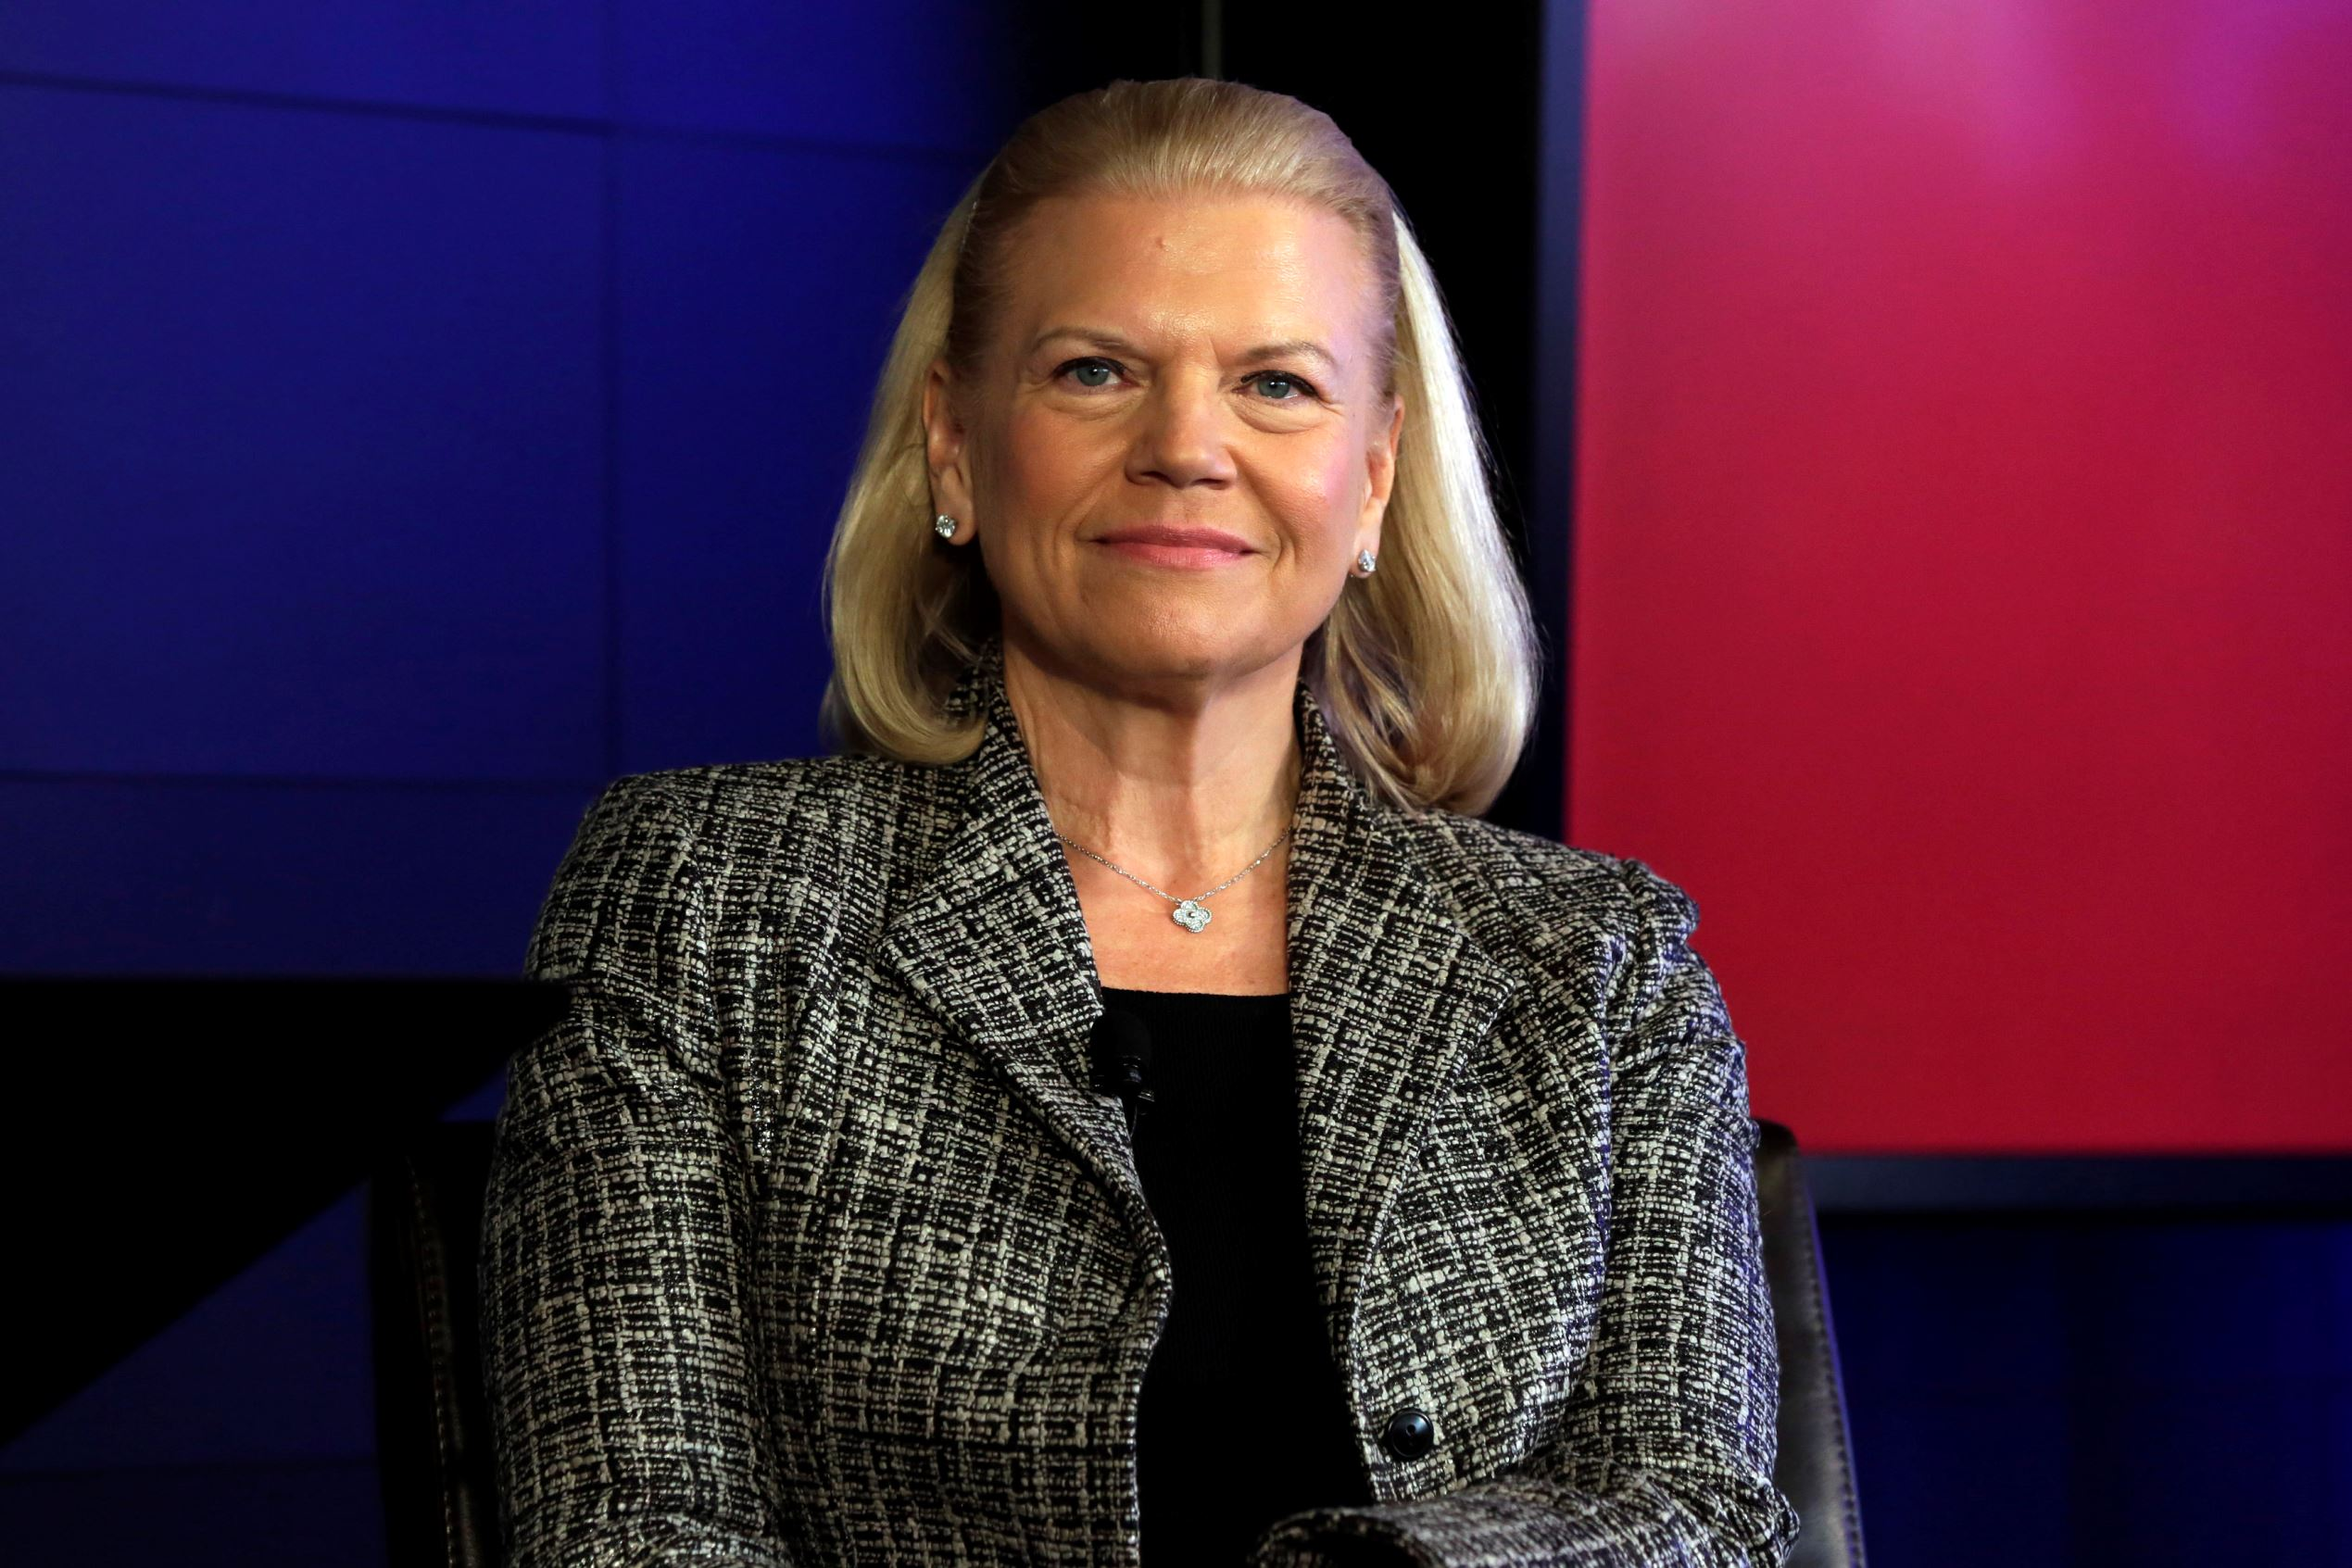 IBM CEO Ginni Rometty at a news conference in New York, in April.